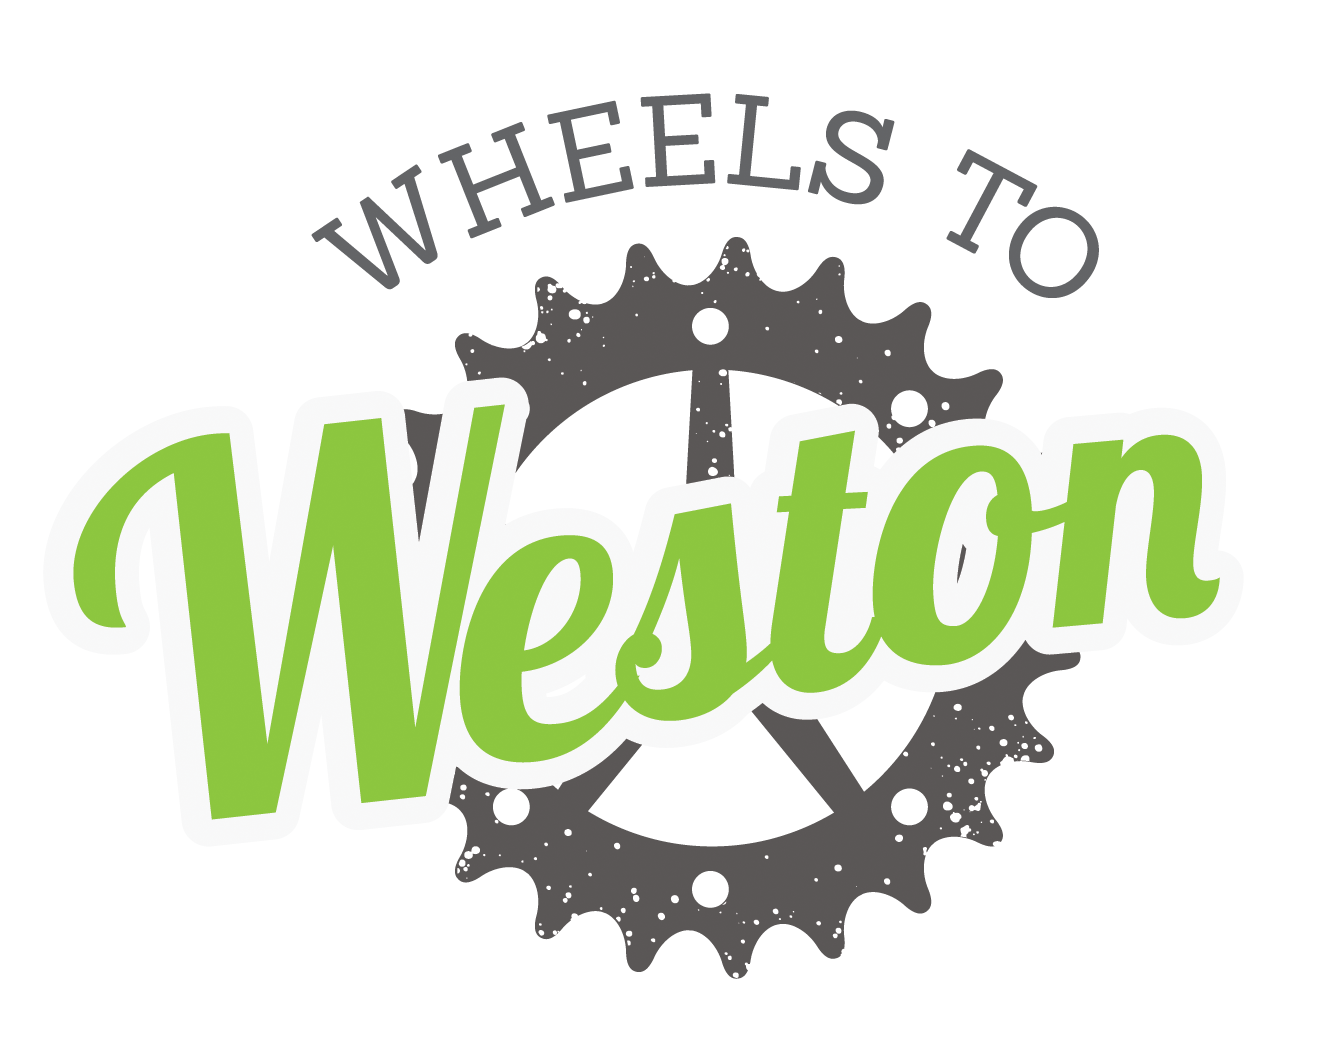 Wheels to Weston - color